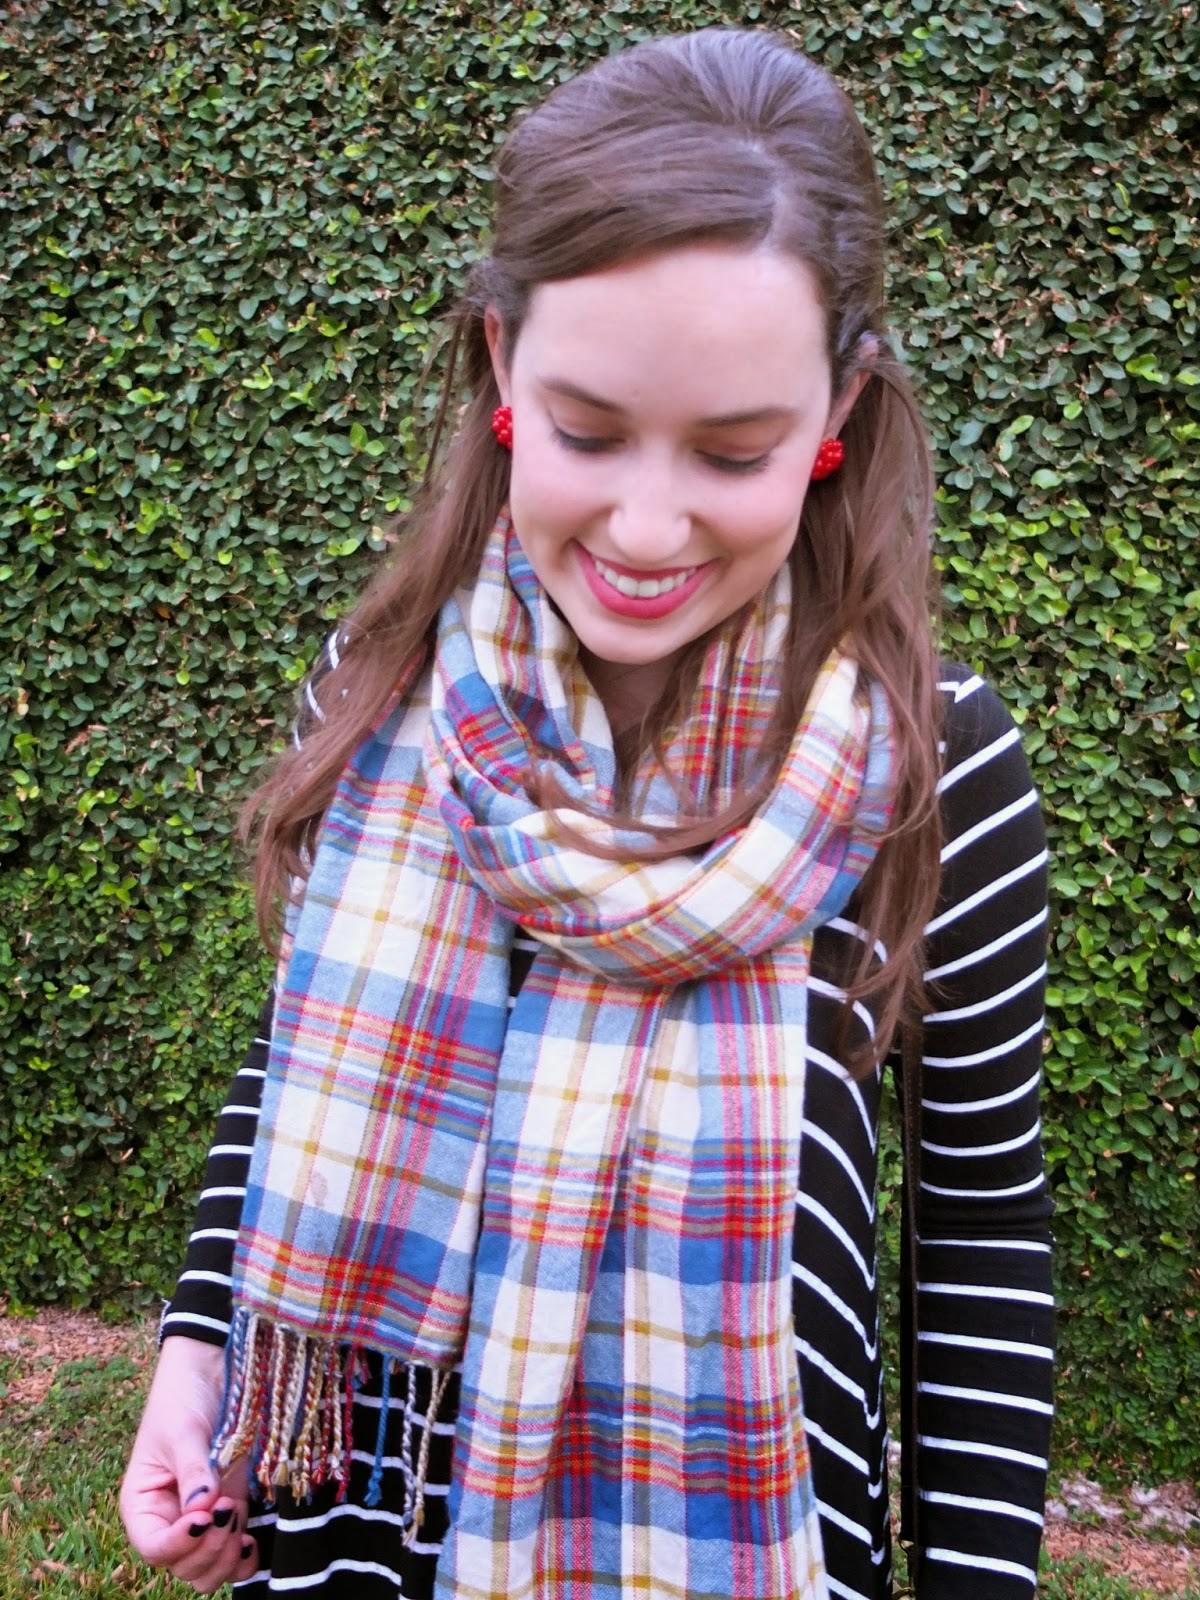 Lisi Lerch Earrings, Lisi Lerch Red Earrings, Lisi Lerch Button Earrings, Lisi Lerch Button, Red Button Earrings, The Lone Star Looking Glass Blog, Zara Plaid Blanket Scarf, Zara Blanket Scar, Zara Plaid Scarf, Plaid Scarf, Anthropologie Black and White Stripe Dress, Anthroplogie Stripe Dress